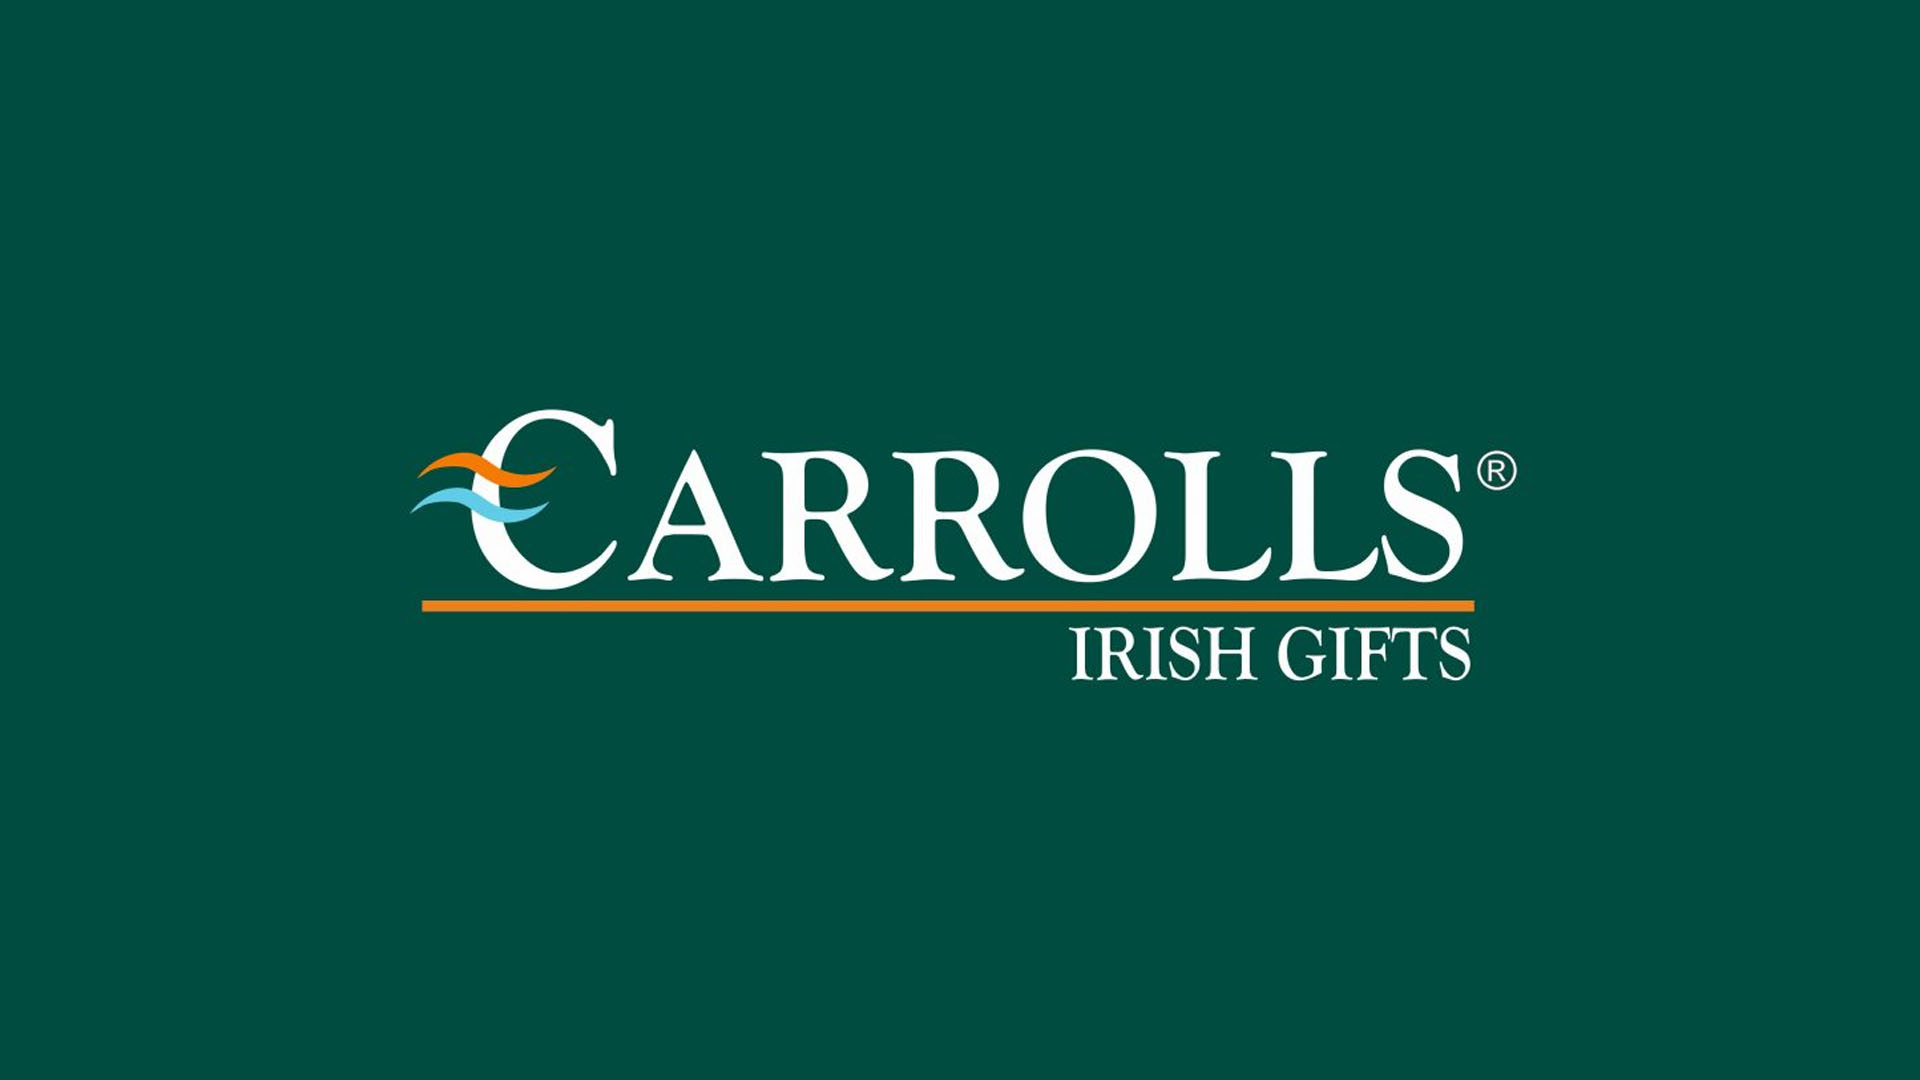 Carrolls Irish Gifts are the leading retailer of quality Irish Clothing, Gifts, Jewelry & Souvenirs. We stock many leading Irish brands including Guinness, Carraig Donn and Tipperary Crystal.